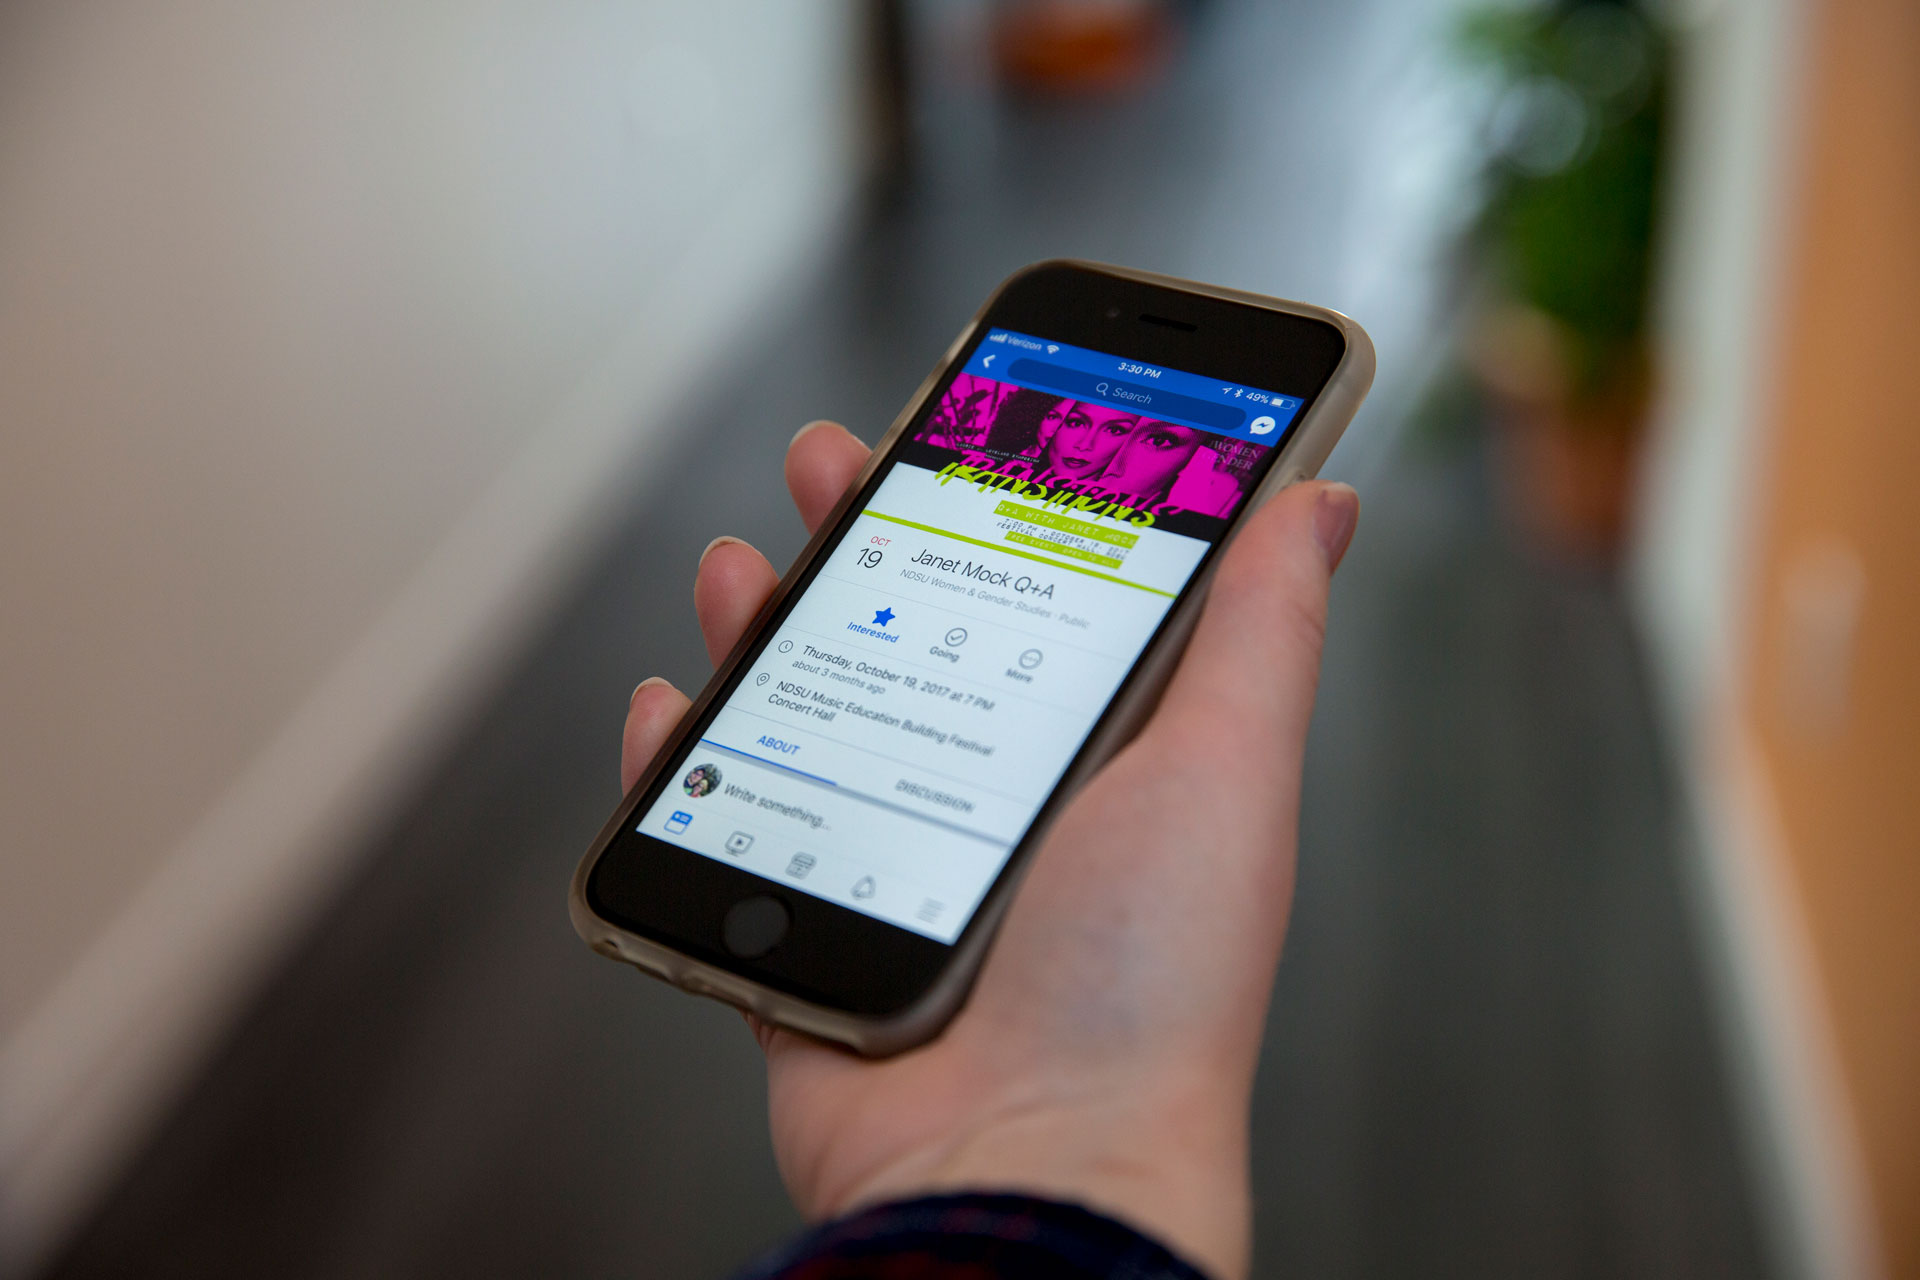 A hand holding an iPhone displaying a Facebook event with pink and green cover photo